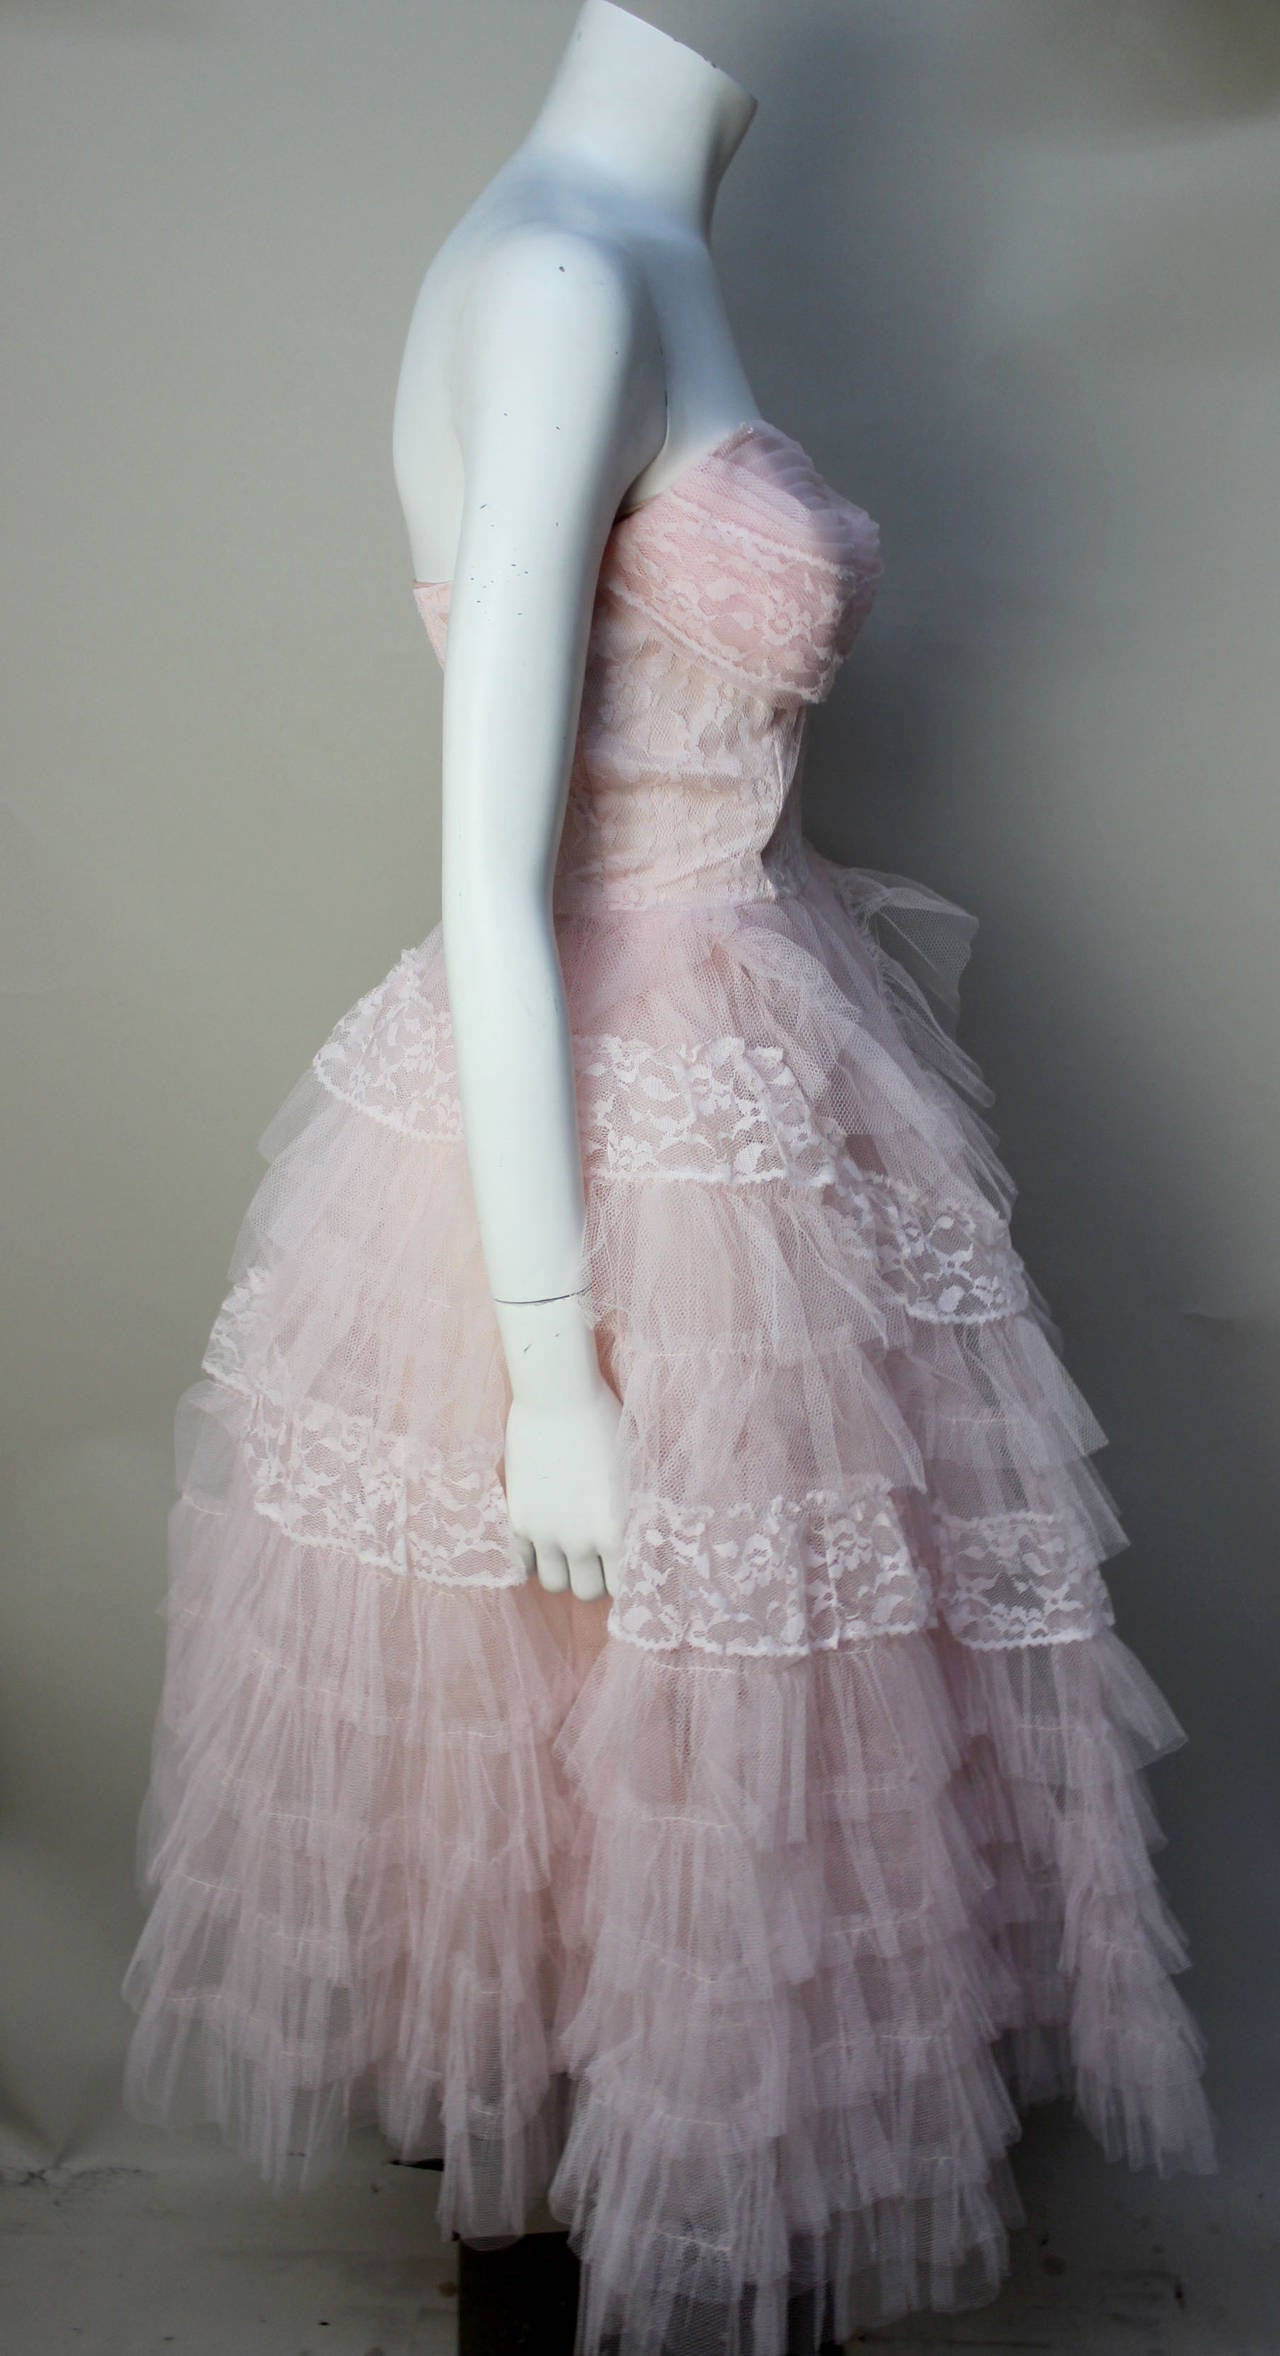 Stunning Never Worn 1950s Pink Tulle Evening Dress with Lace Bolero In New never worn Condition For Sale In New York, NY